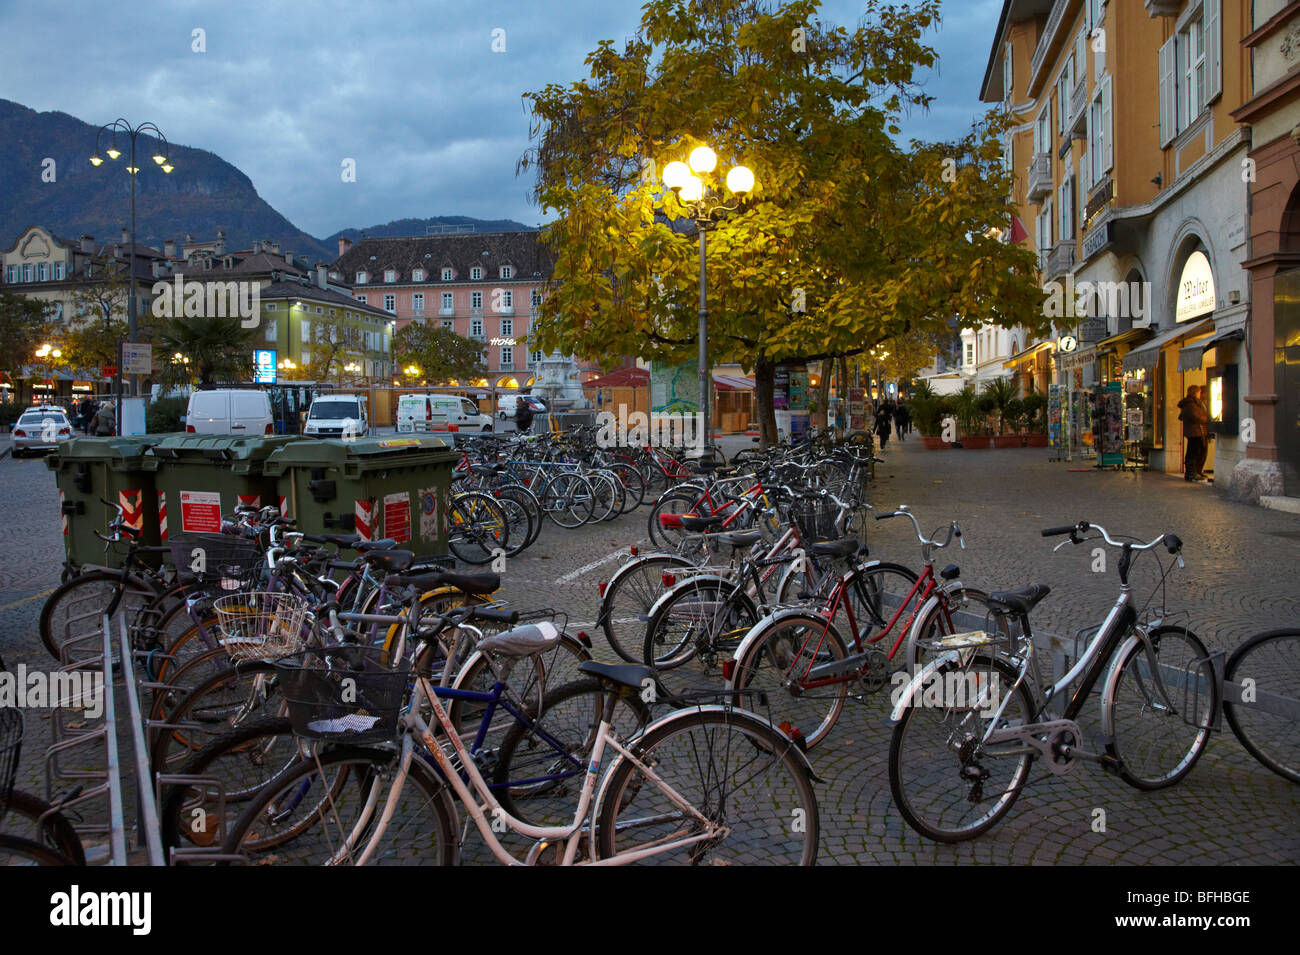 Bike racks and rubbish bins in the historical centre of Bolzano, Alto Adige, Italy. - Stock Image